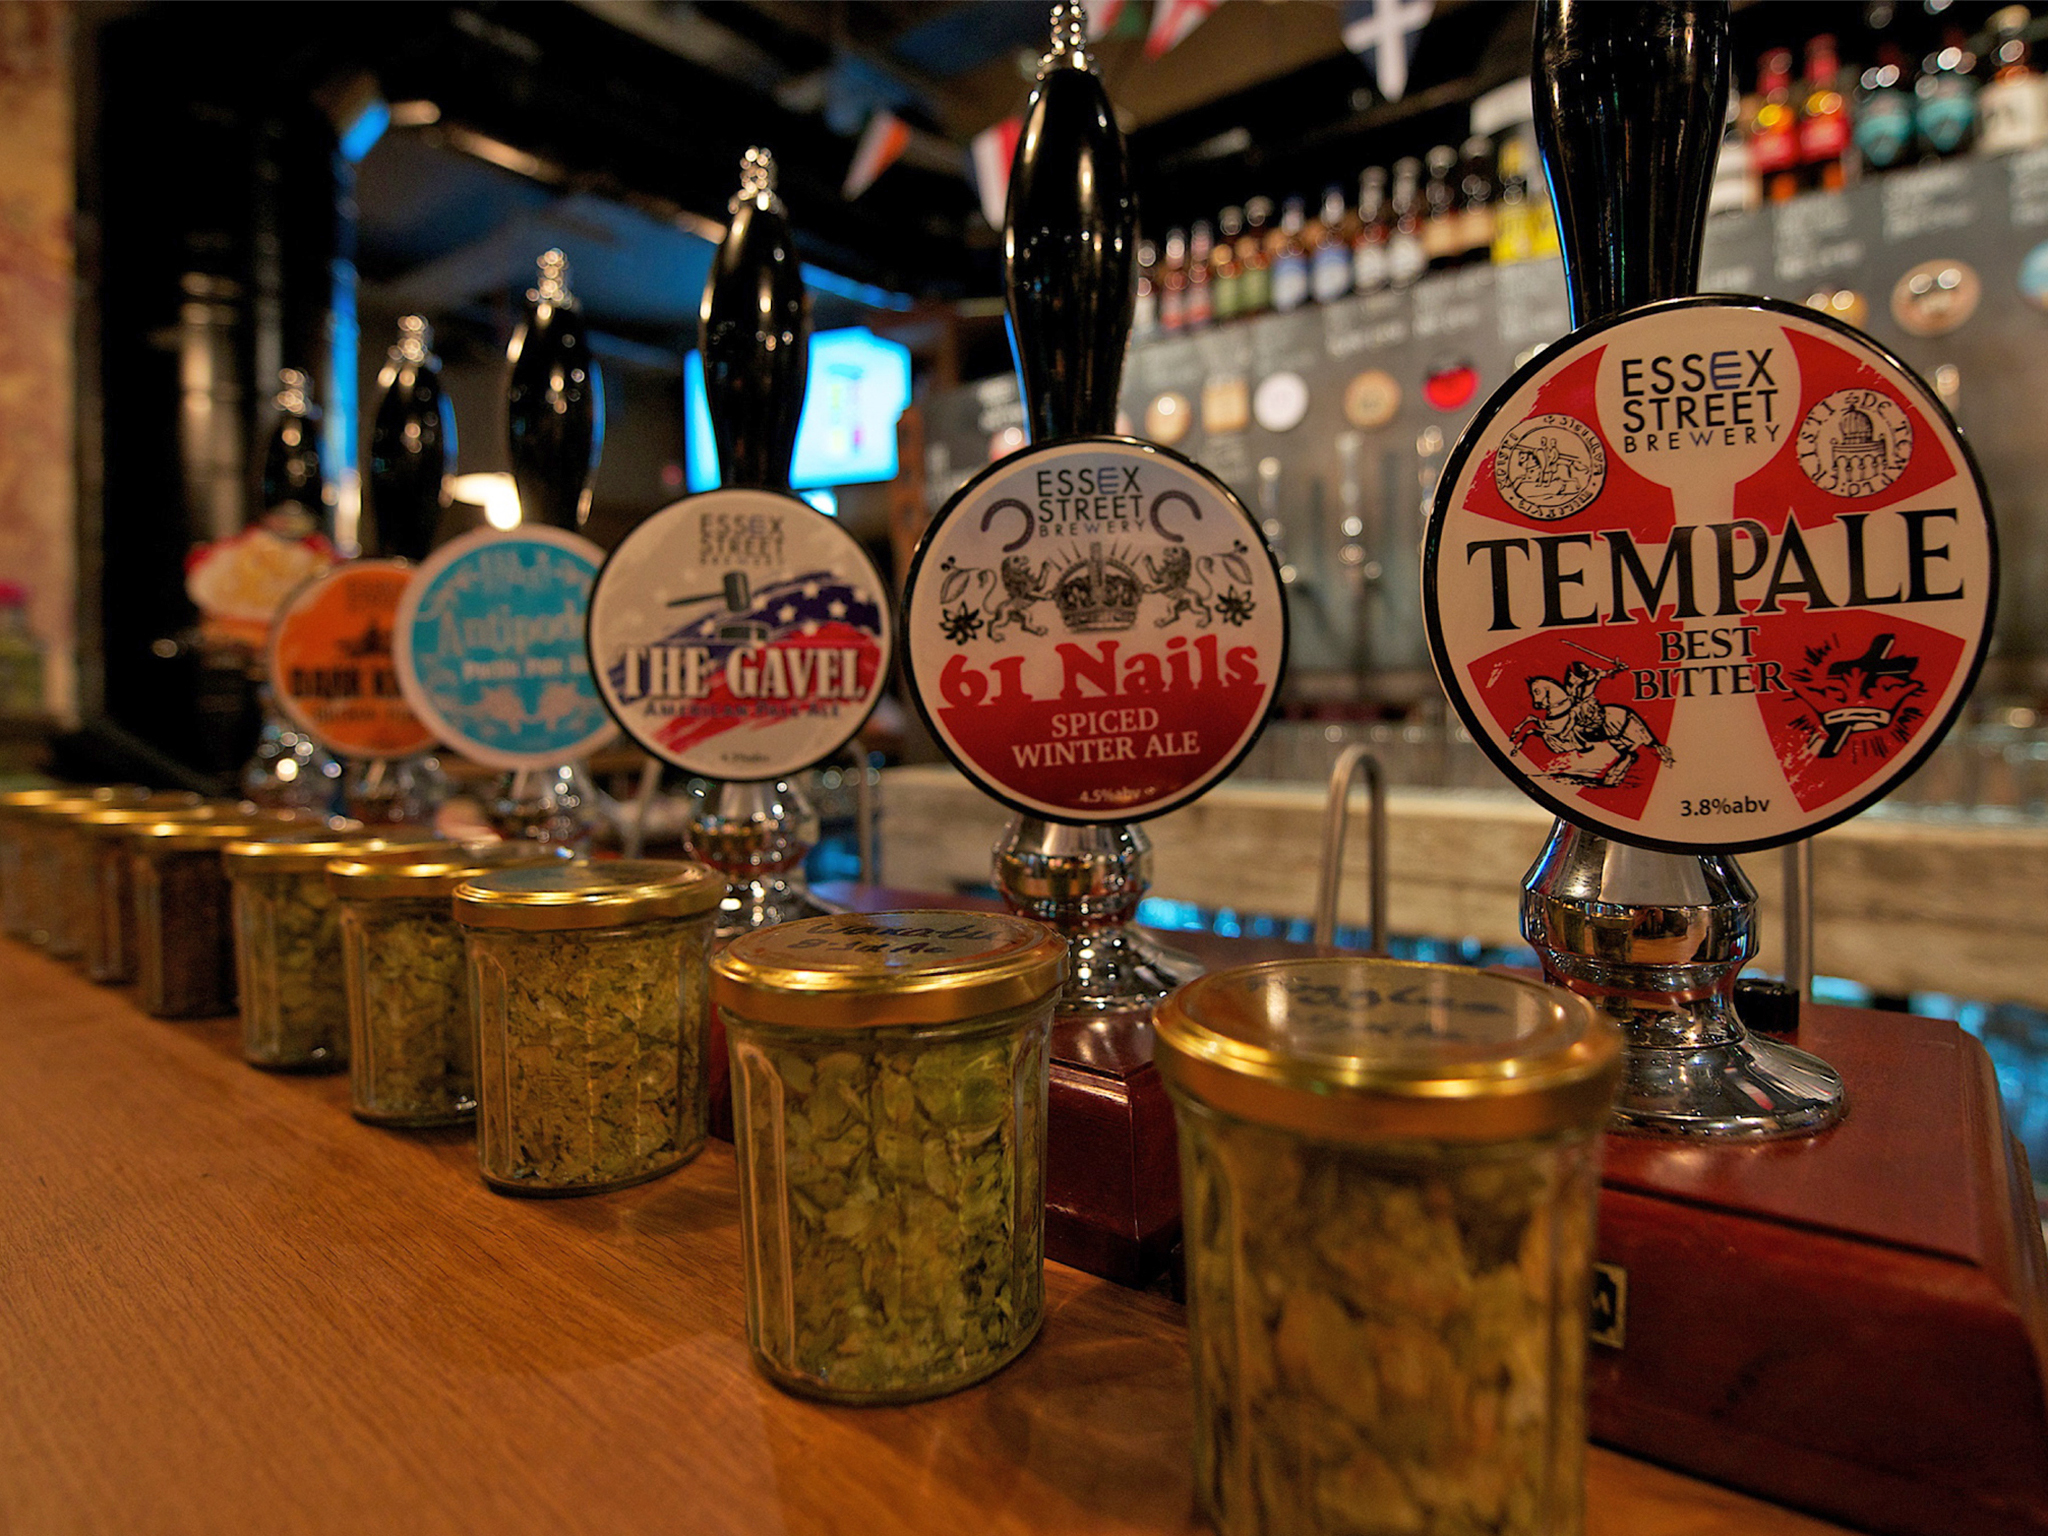 best craft beer bars in london, temple brew house